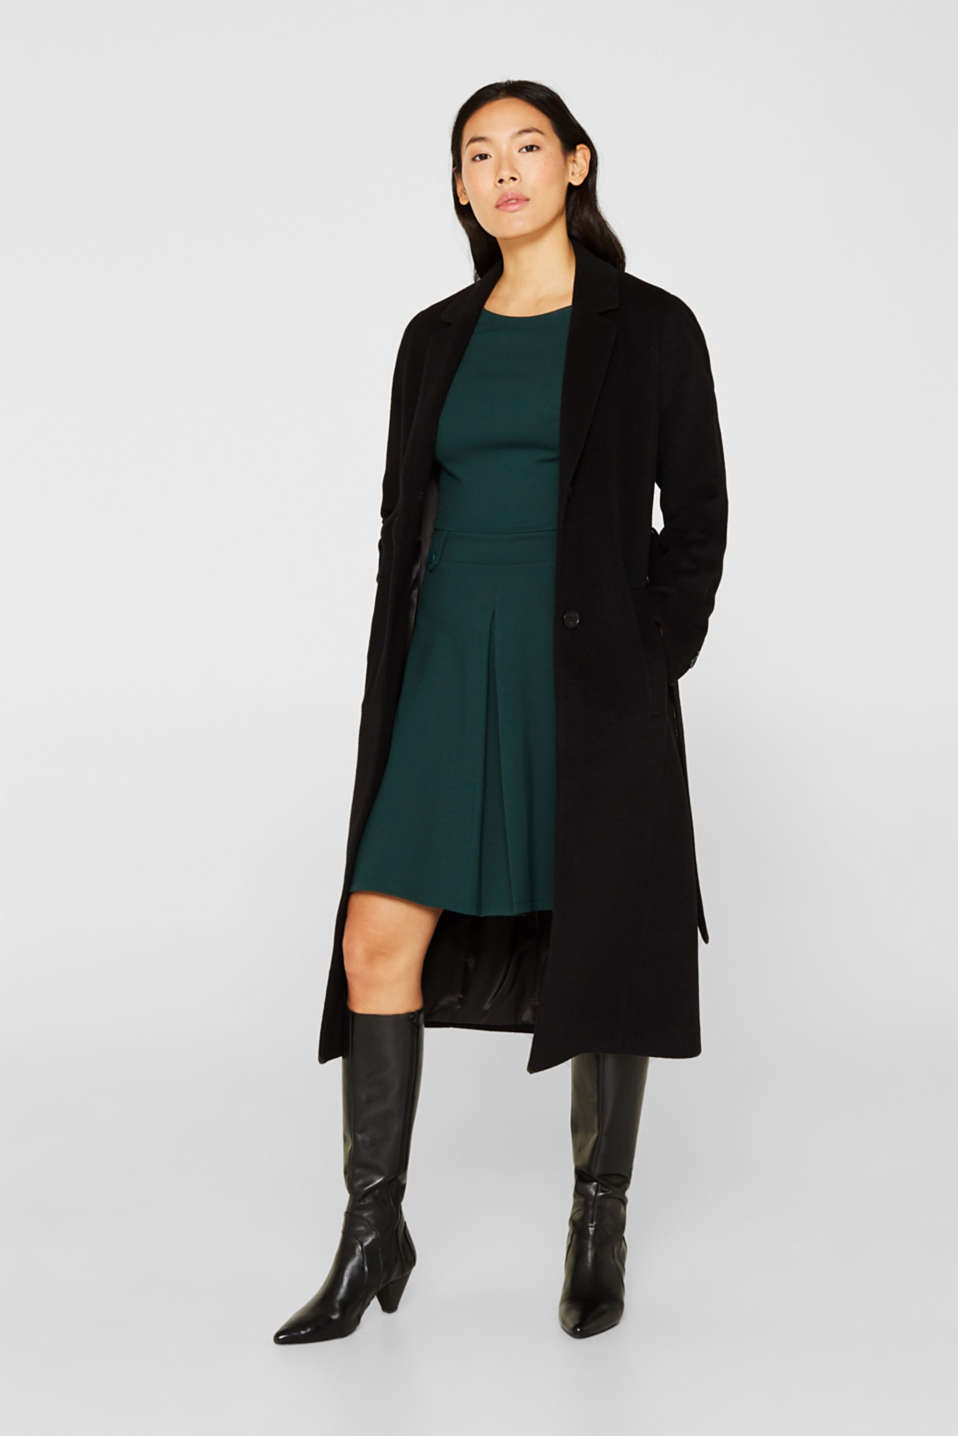 Flared dress made of stretch jersey, DARK TEAL GREEN, detail image number 1